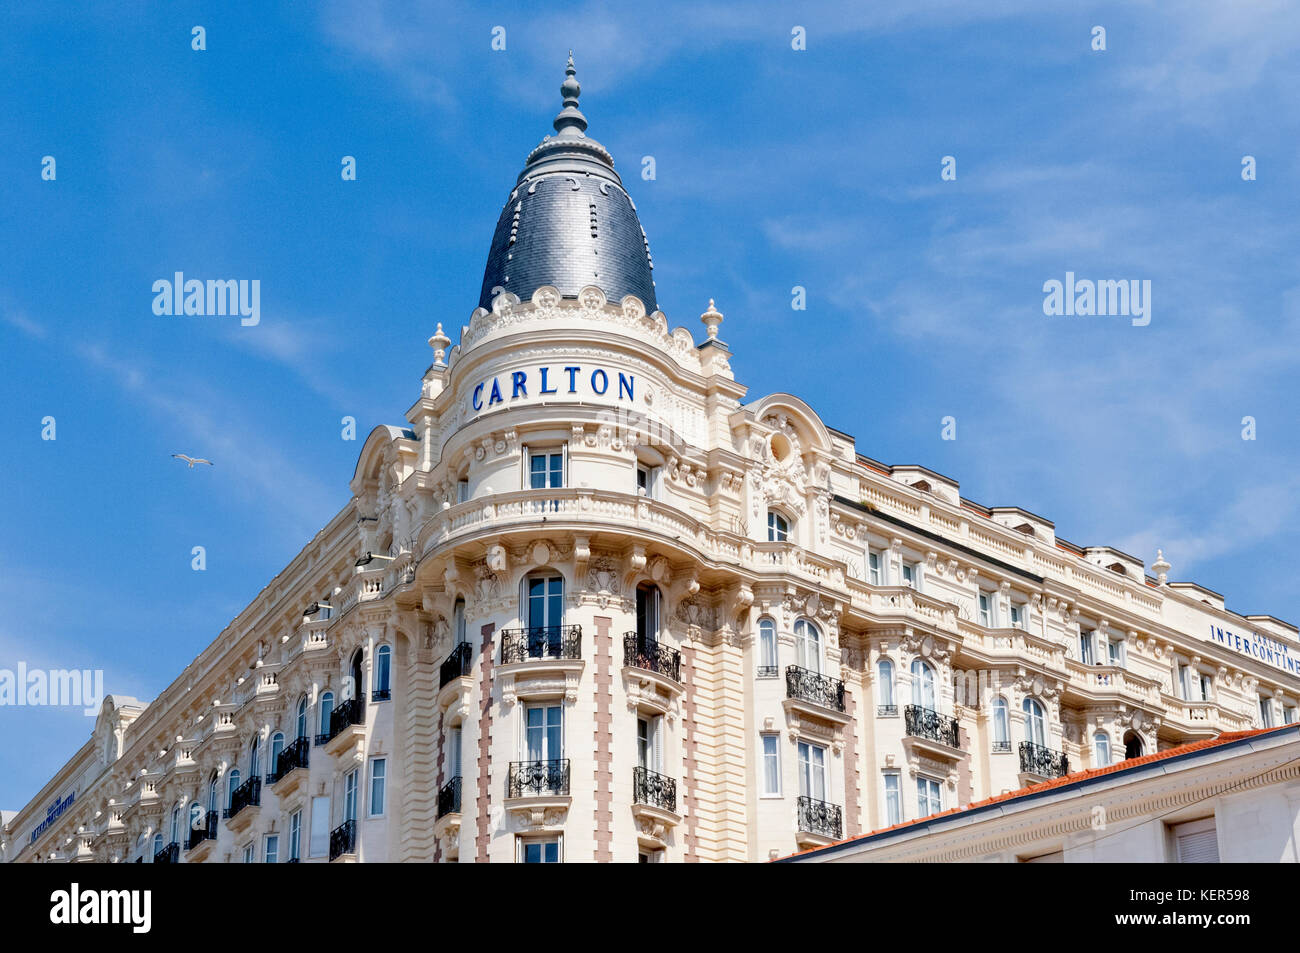 Carlton International Hotel in Cannes, France - Stock Image